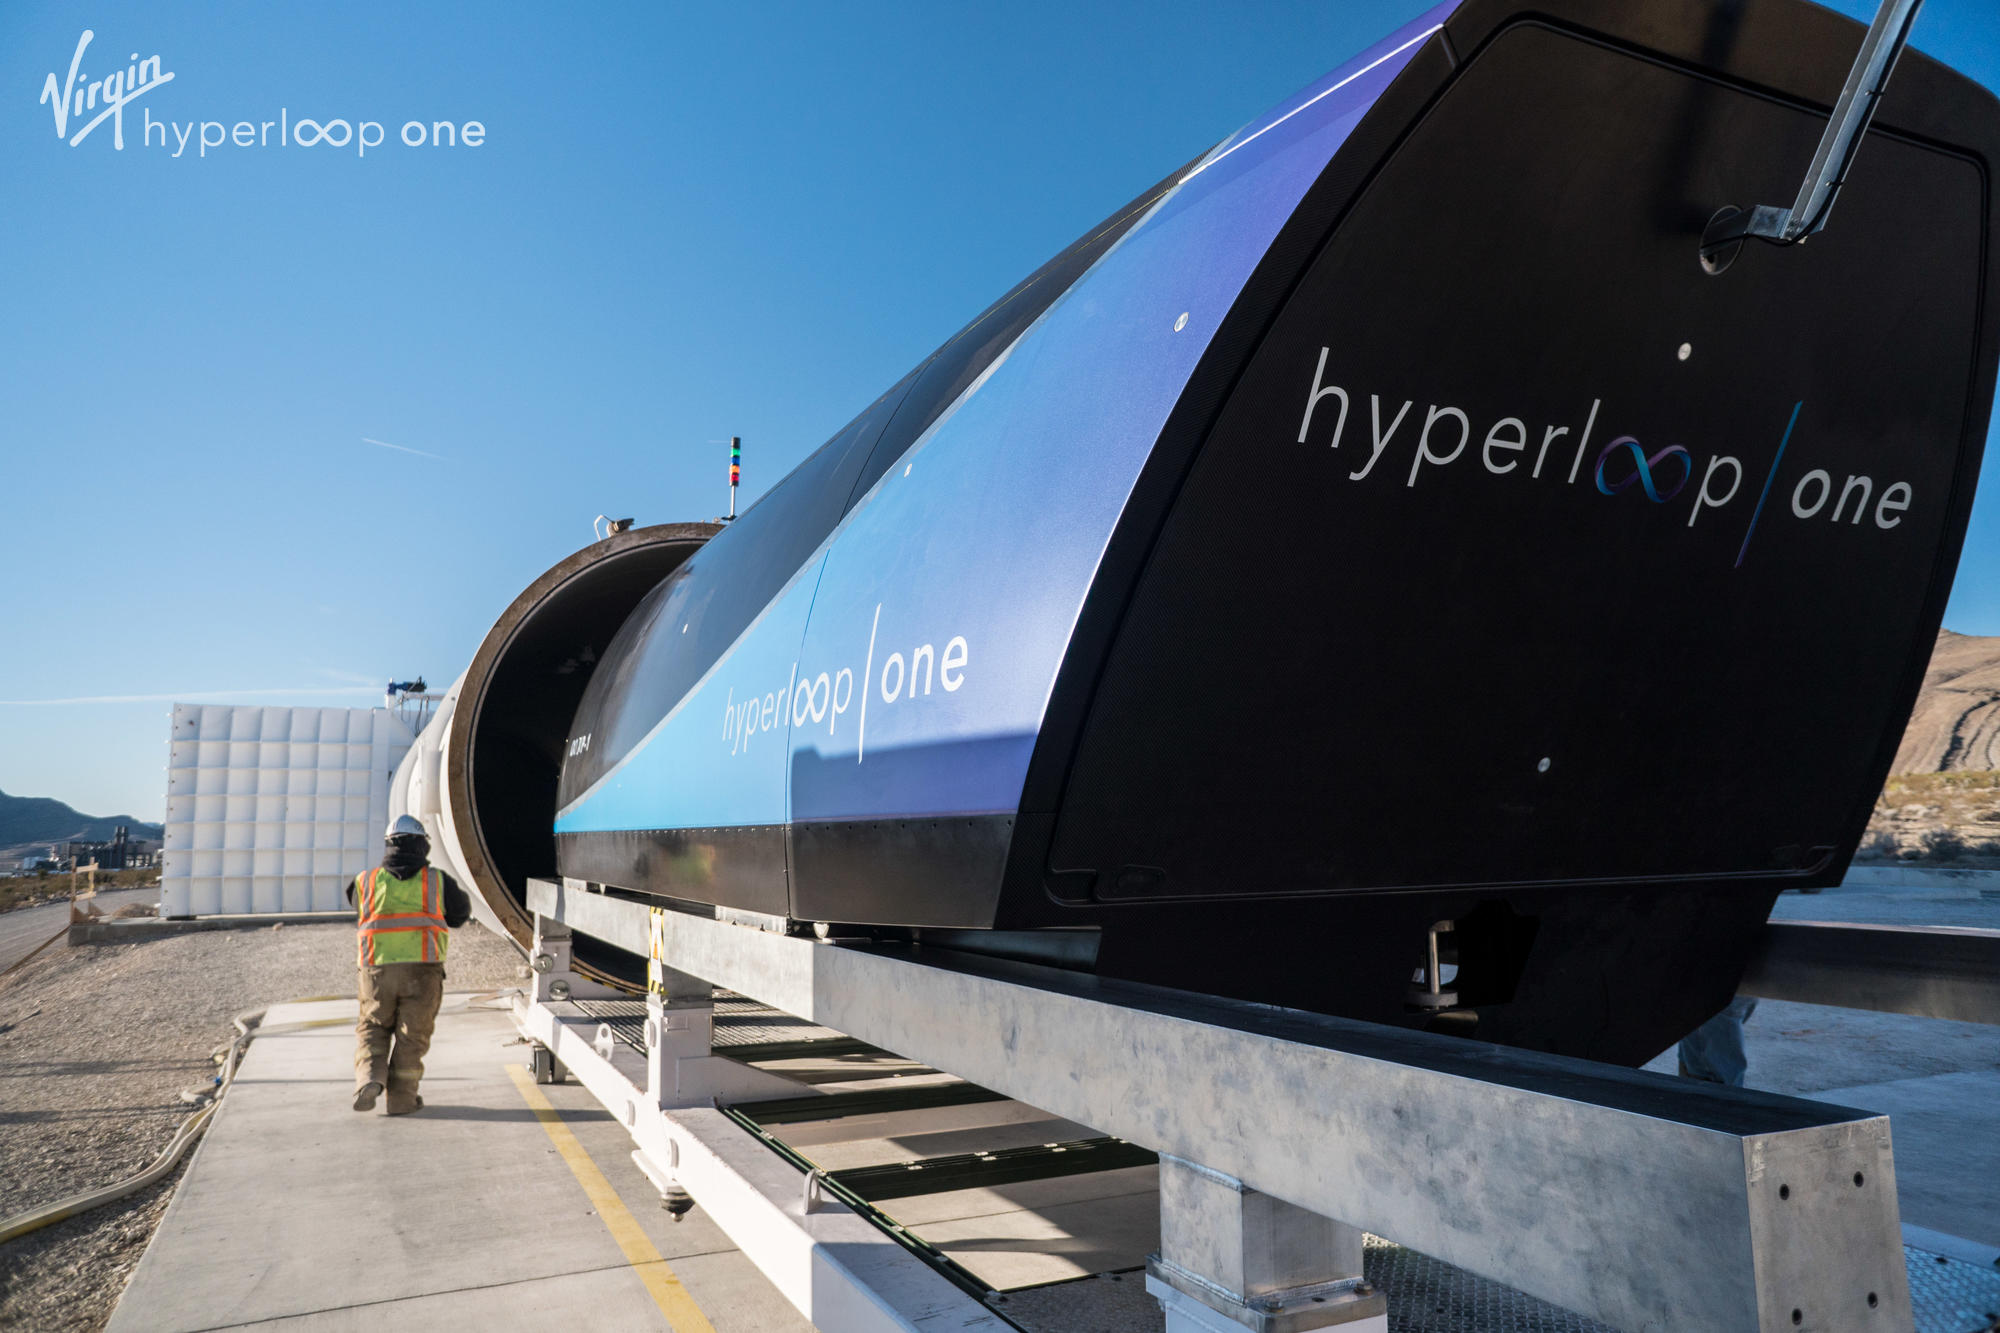 Virgin Hyperloop One tube